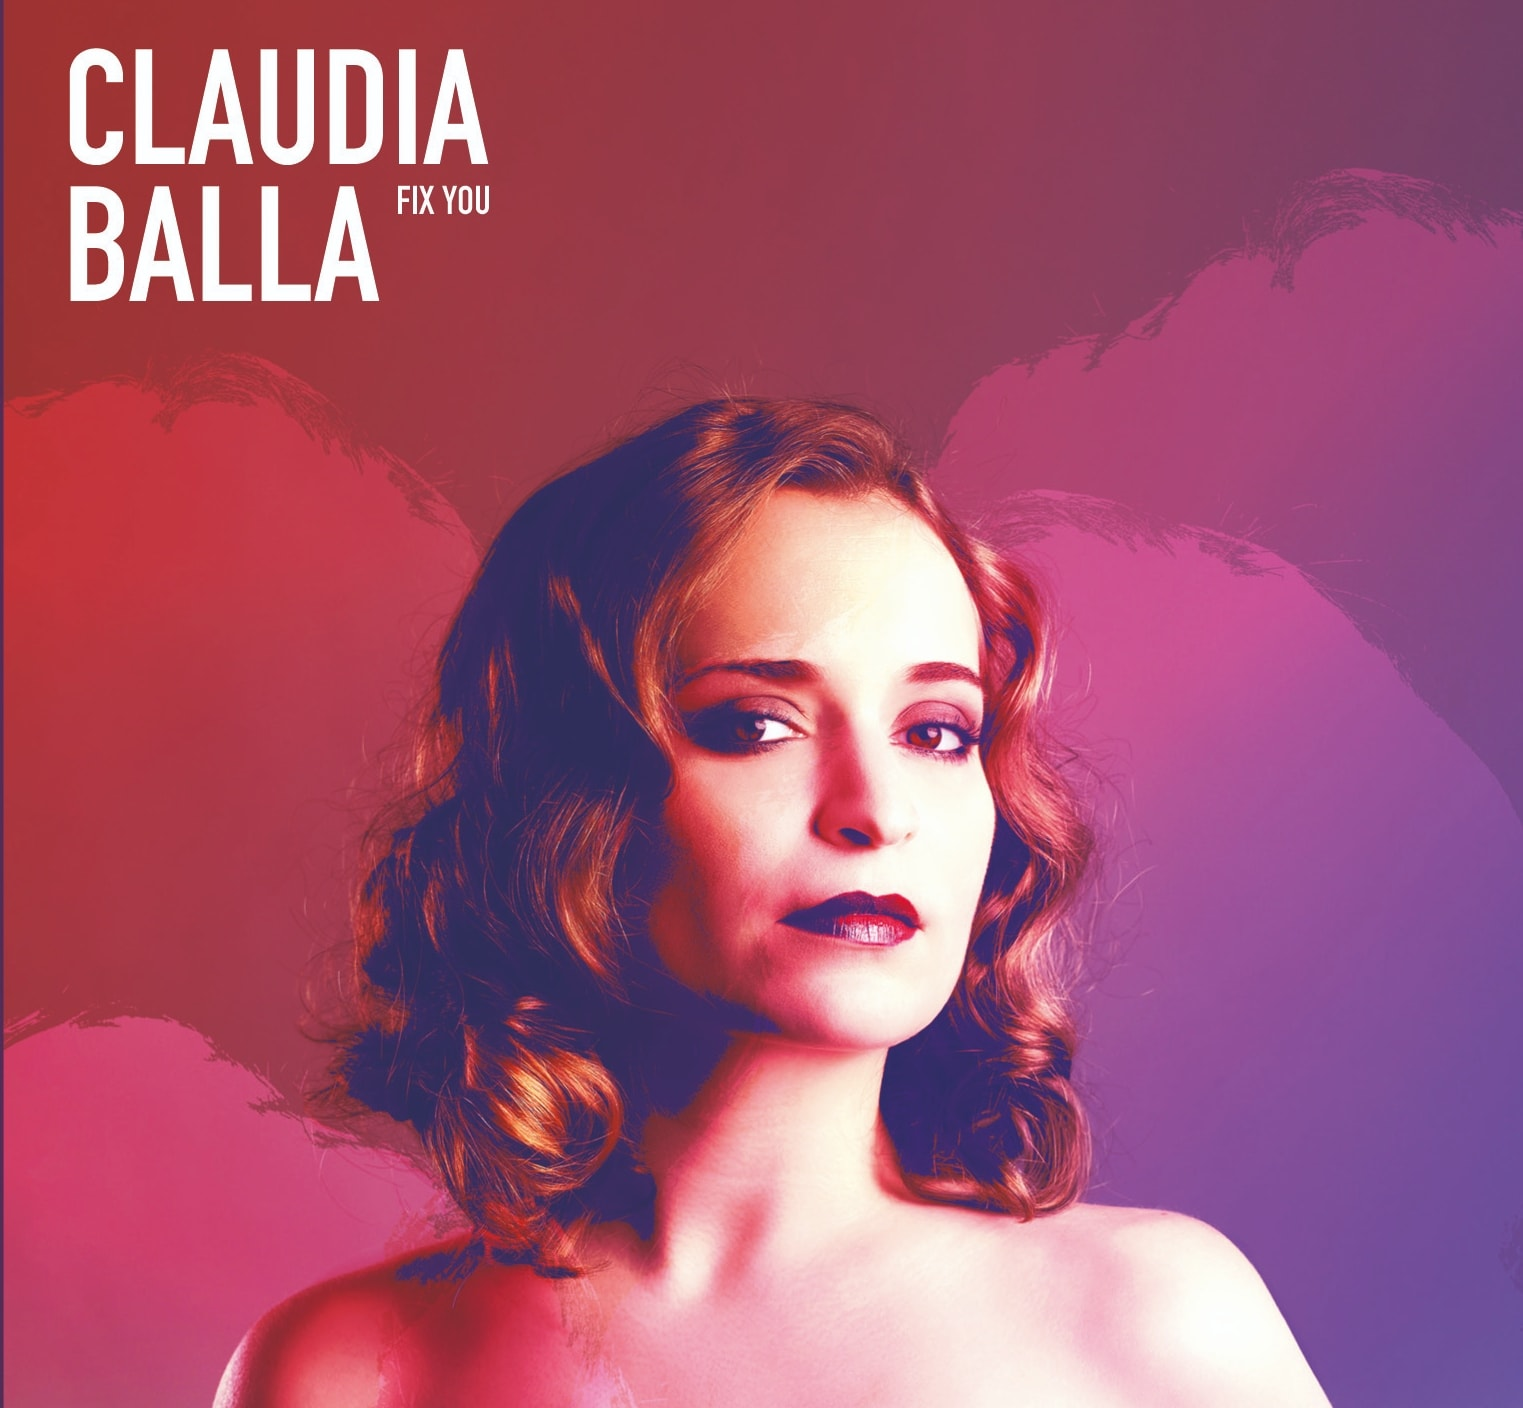 Claudia Balla Fix You